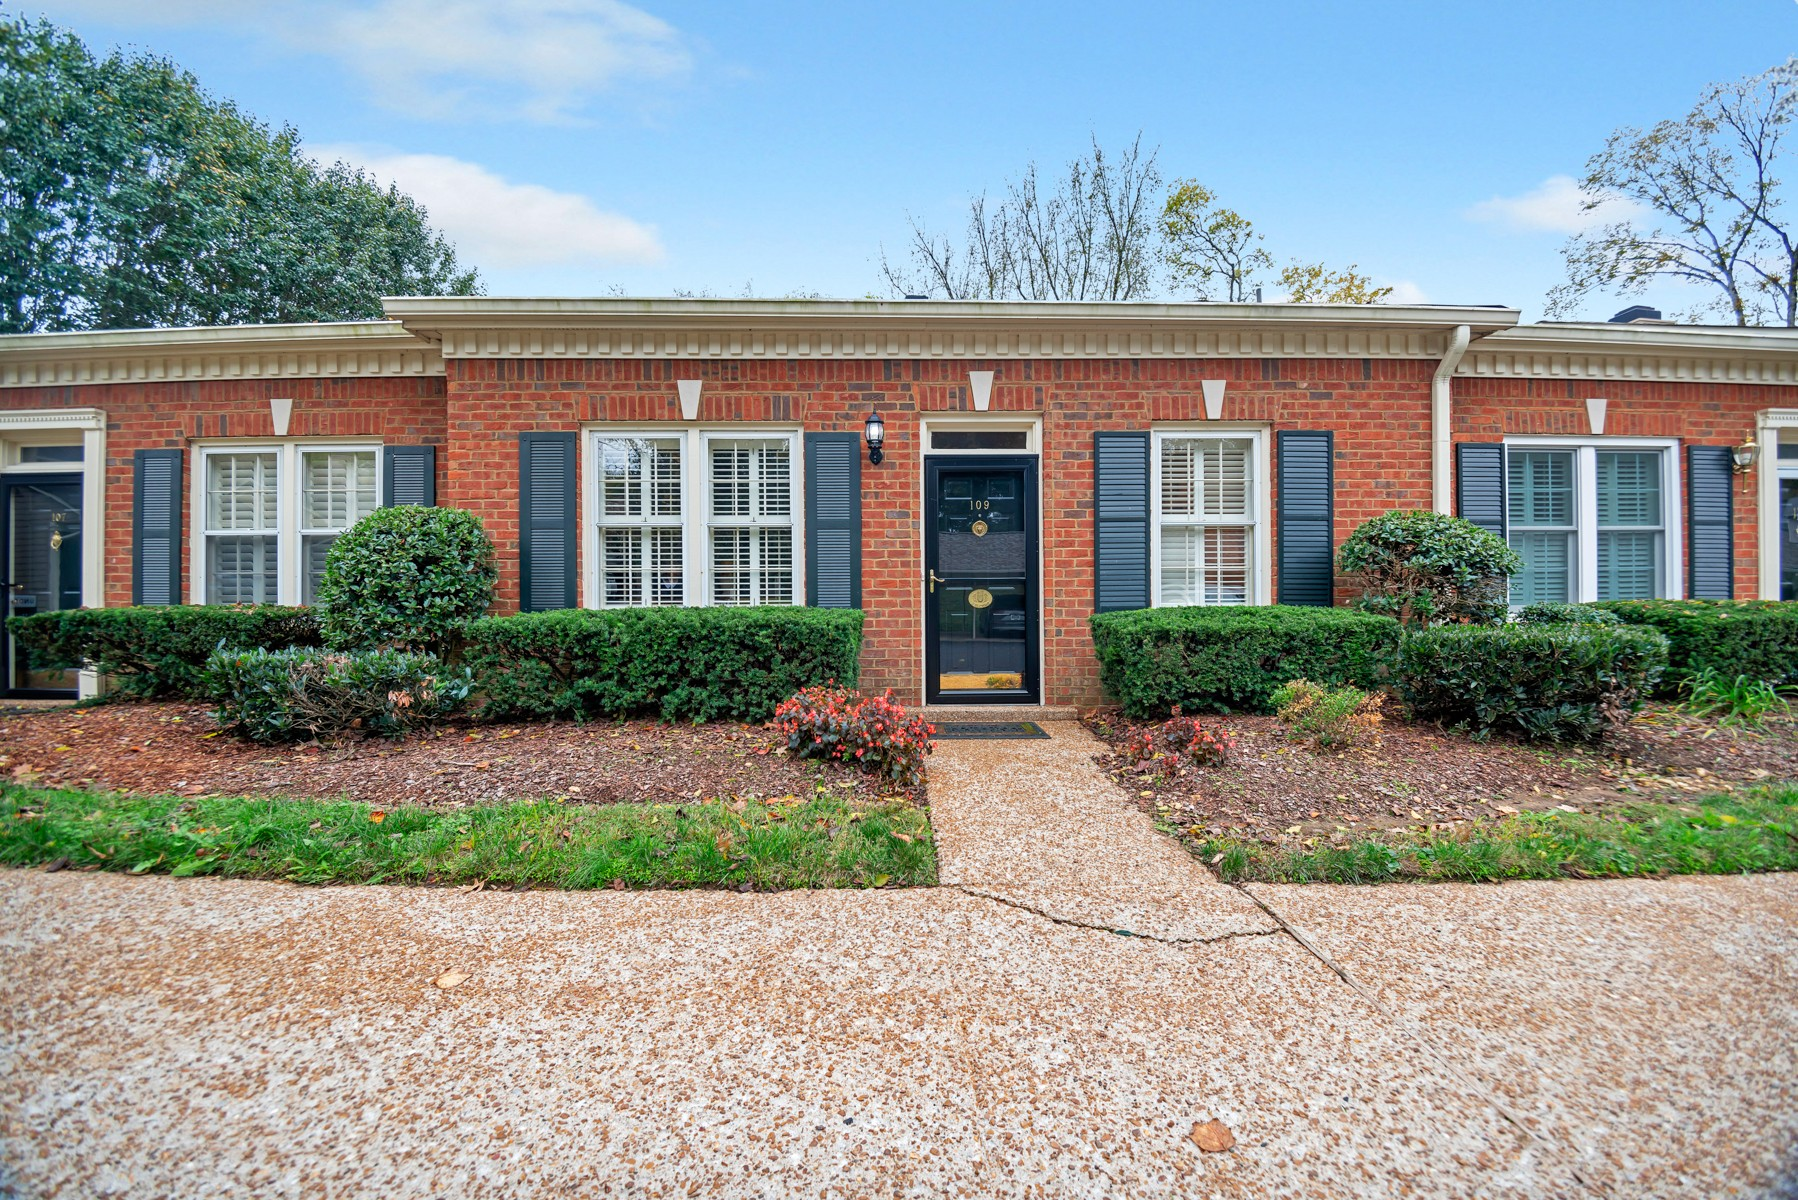 109 Windsor Terrace Dr, Bellevue in Davidson County County, TN 37221 Home for Sale